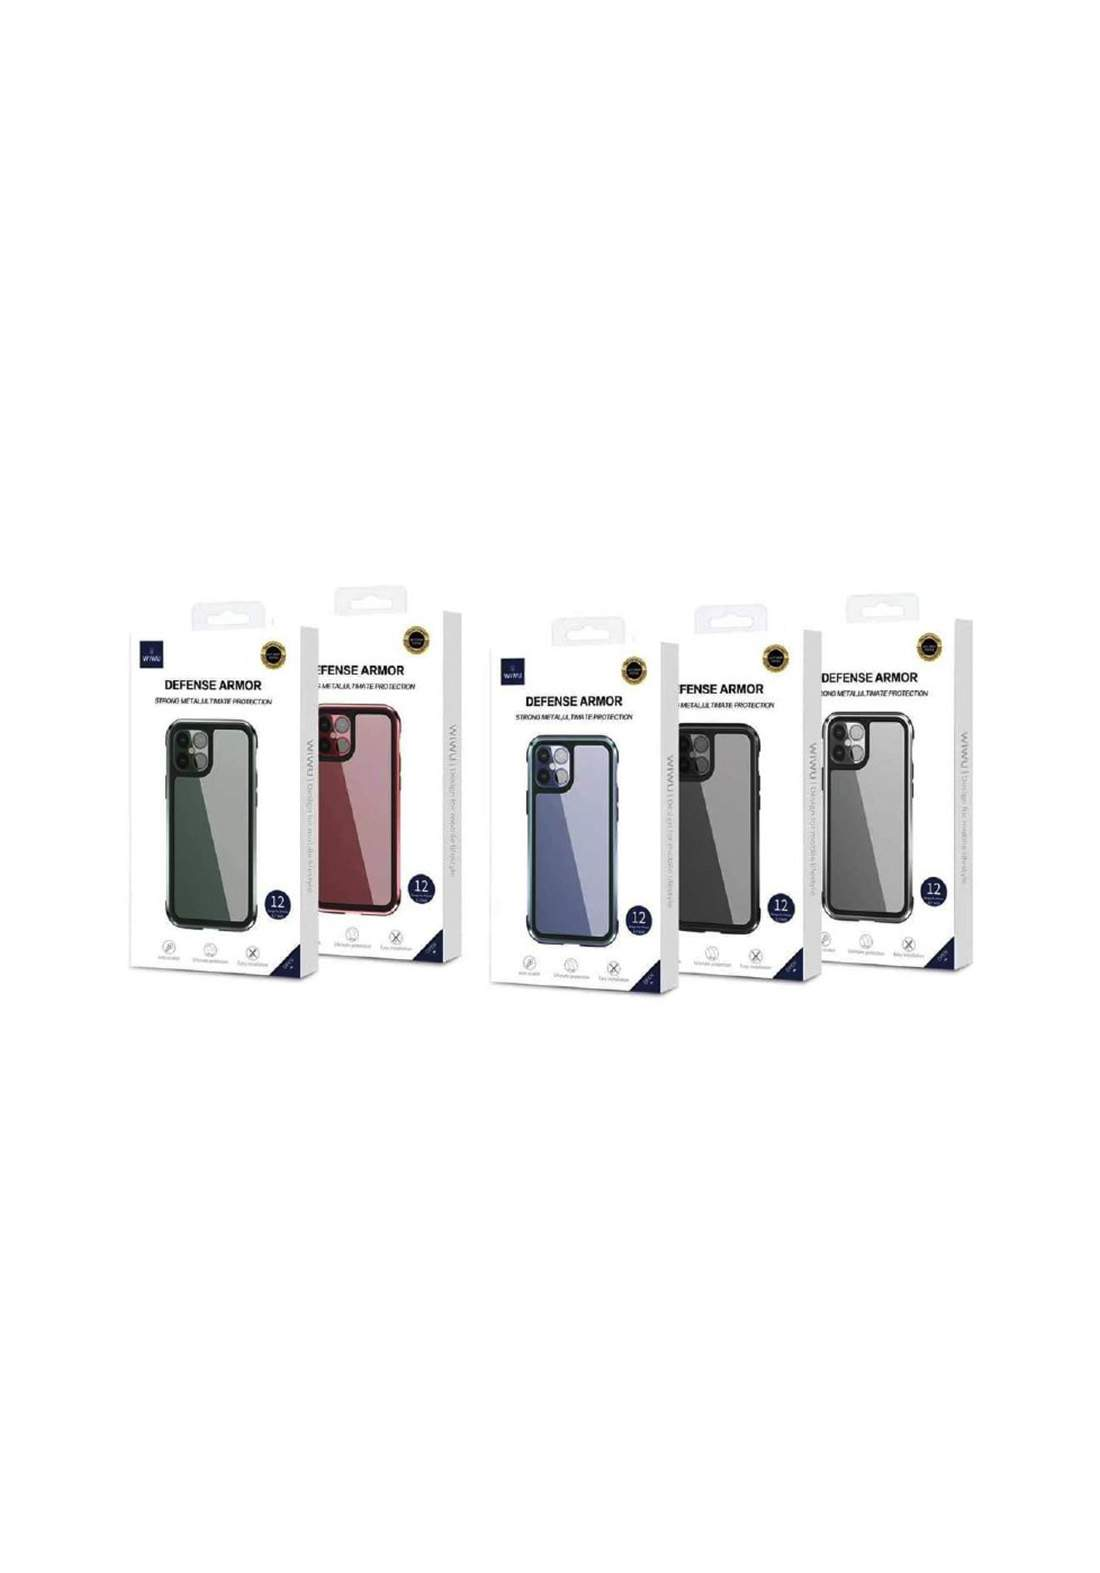 WIWU Defense Armor Phone Case For iPhone 12 Pro MAX